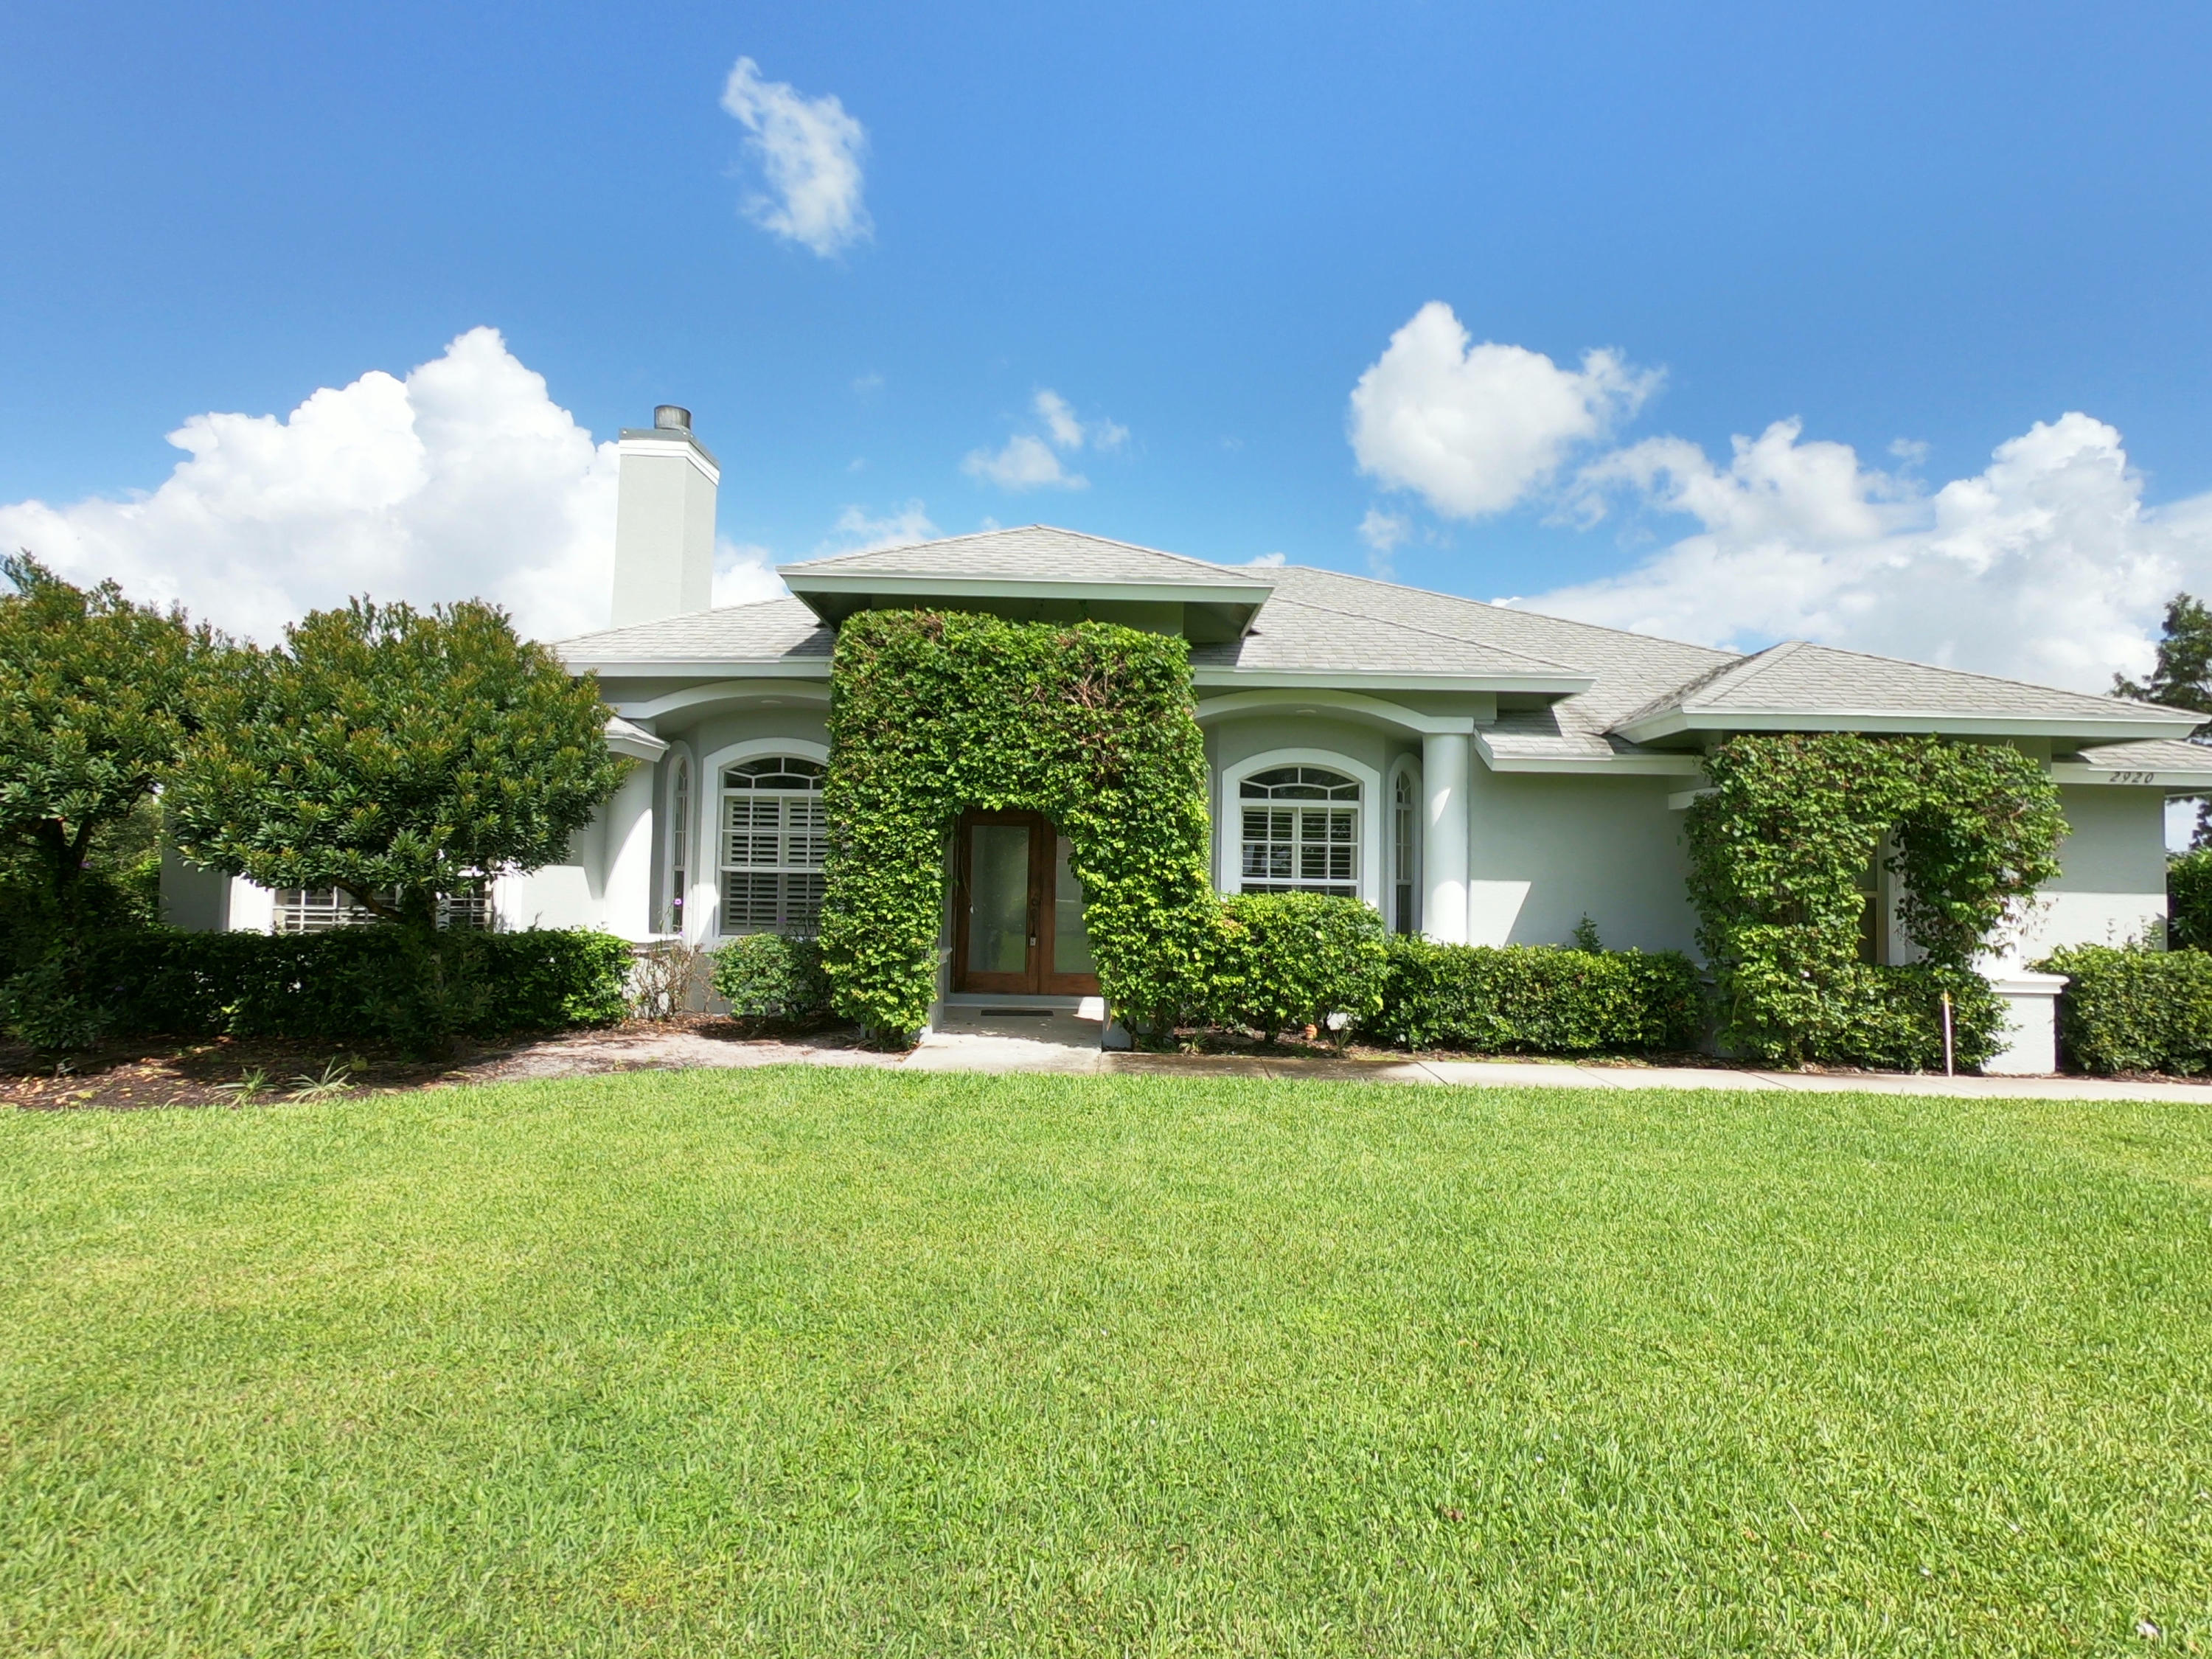 2920 Appaloosa Trail, Wellington, Florida 33414, 4 Bedrooms Bedrooms, ,3 BathroomsBathrooms,Single Family,For Rent,Appaloosa,1,RX-10544652